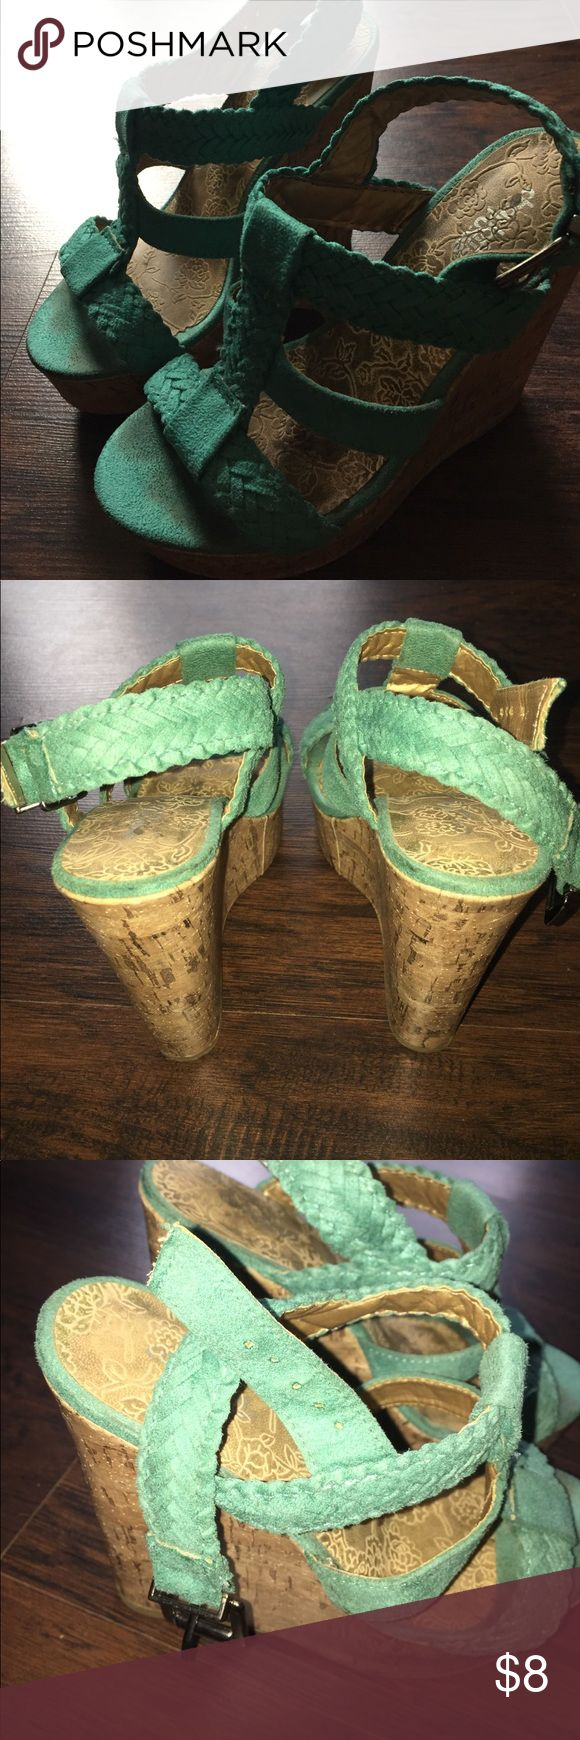 Torquise/teal wedges Charlotte Russe Super comfortable, good condition. Torquise/teal color Charlotte Russe Shoes Wedges